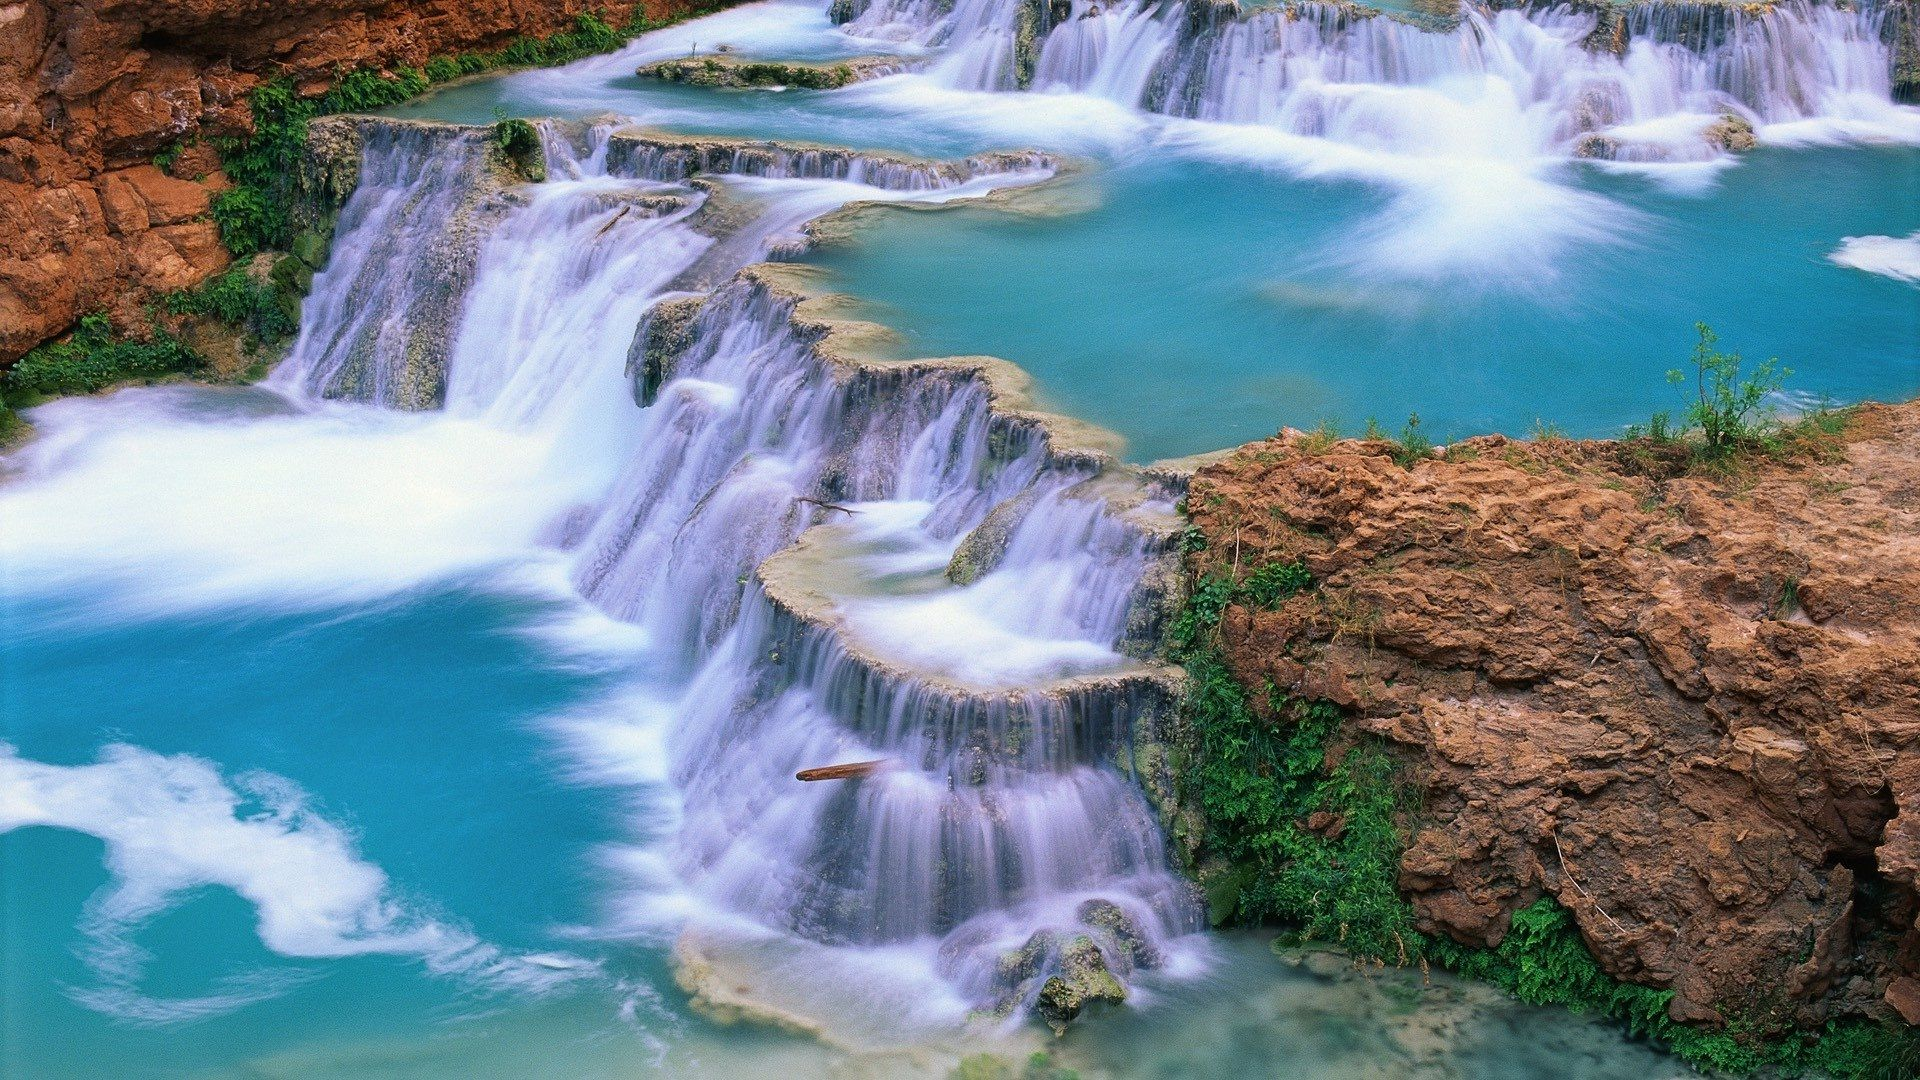 Waterfall wallpaper hd free hd 1080p for desktop genovic com | Chainimage | WP: Landscape ...